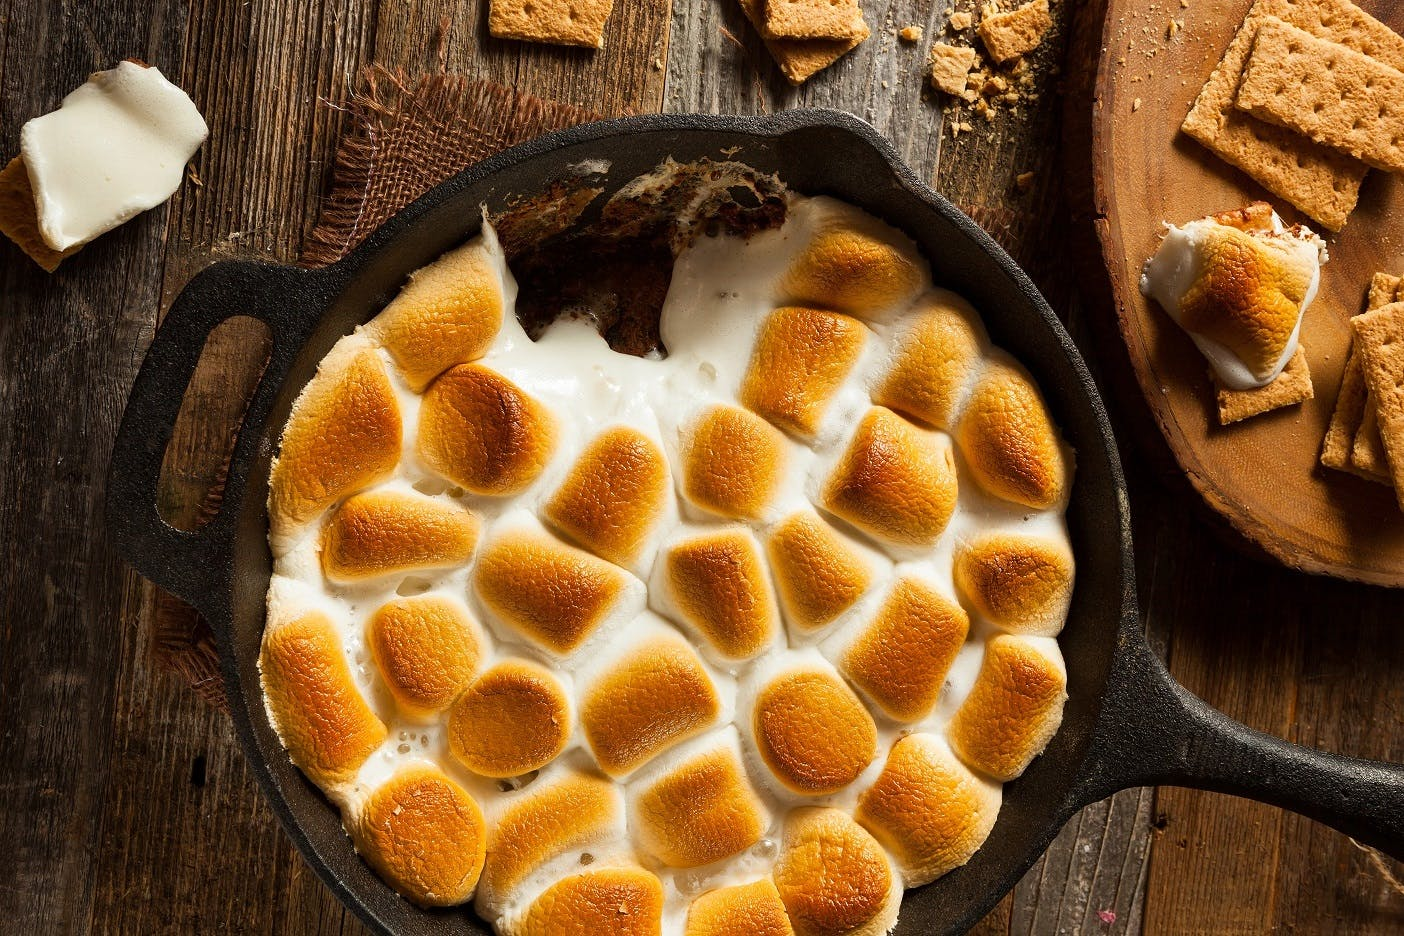 Peanut Butter S'mores Sharing Pan